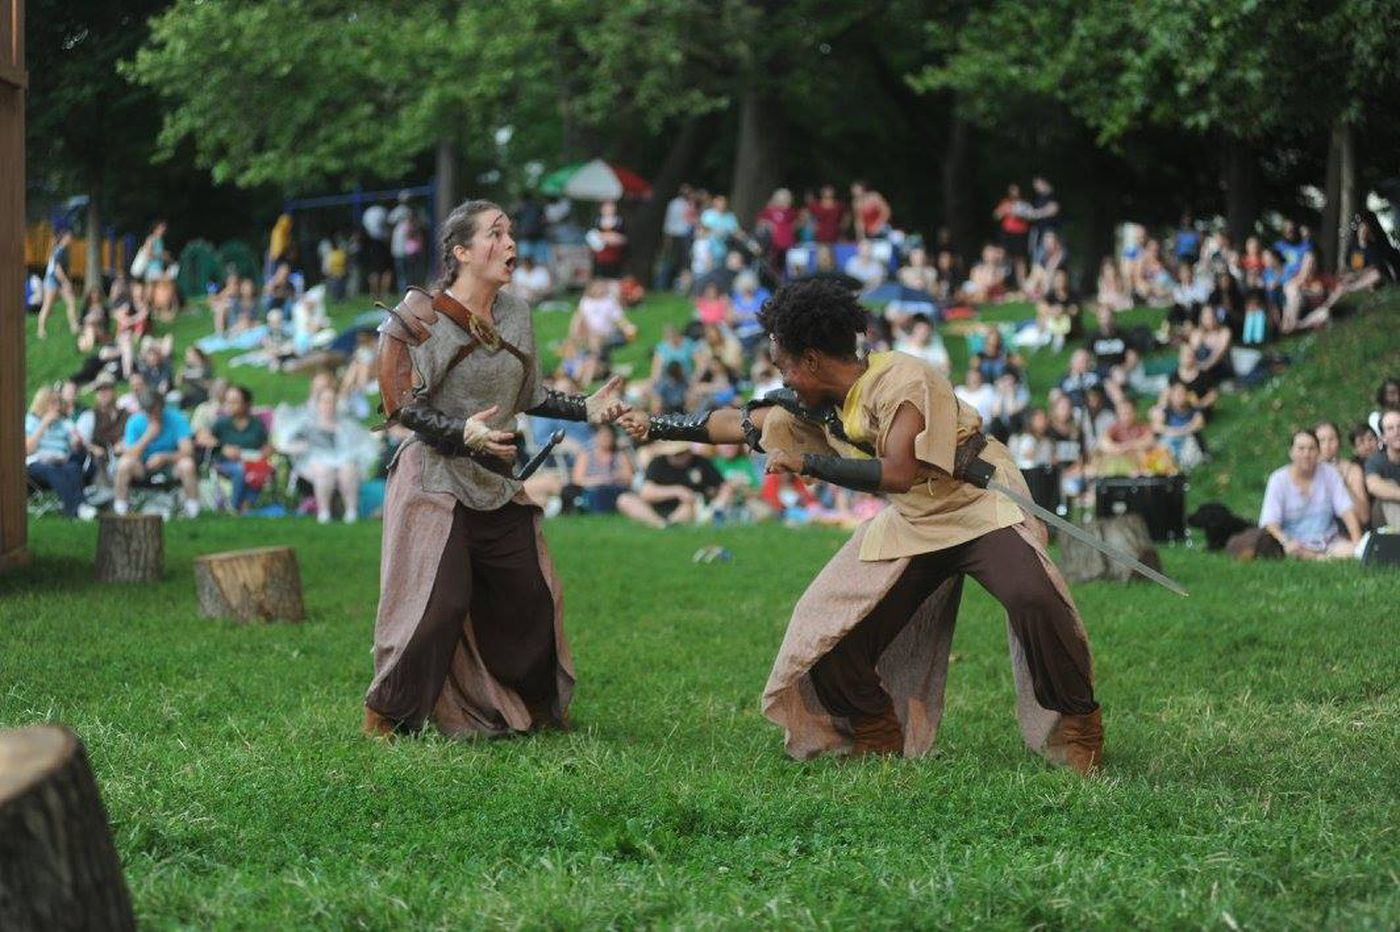 7 days of things to do in Philadelphia from July 22 to 28